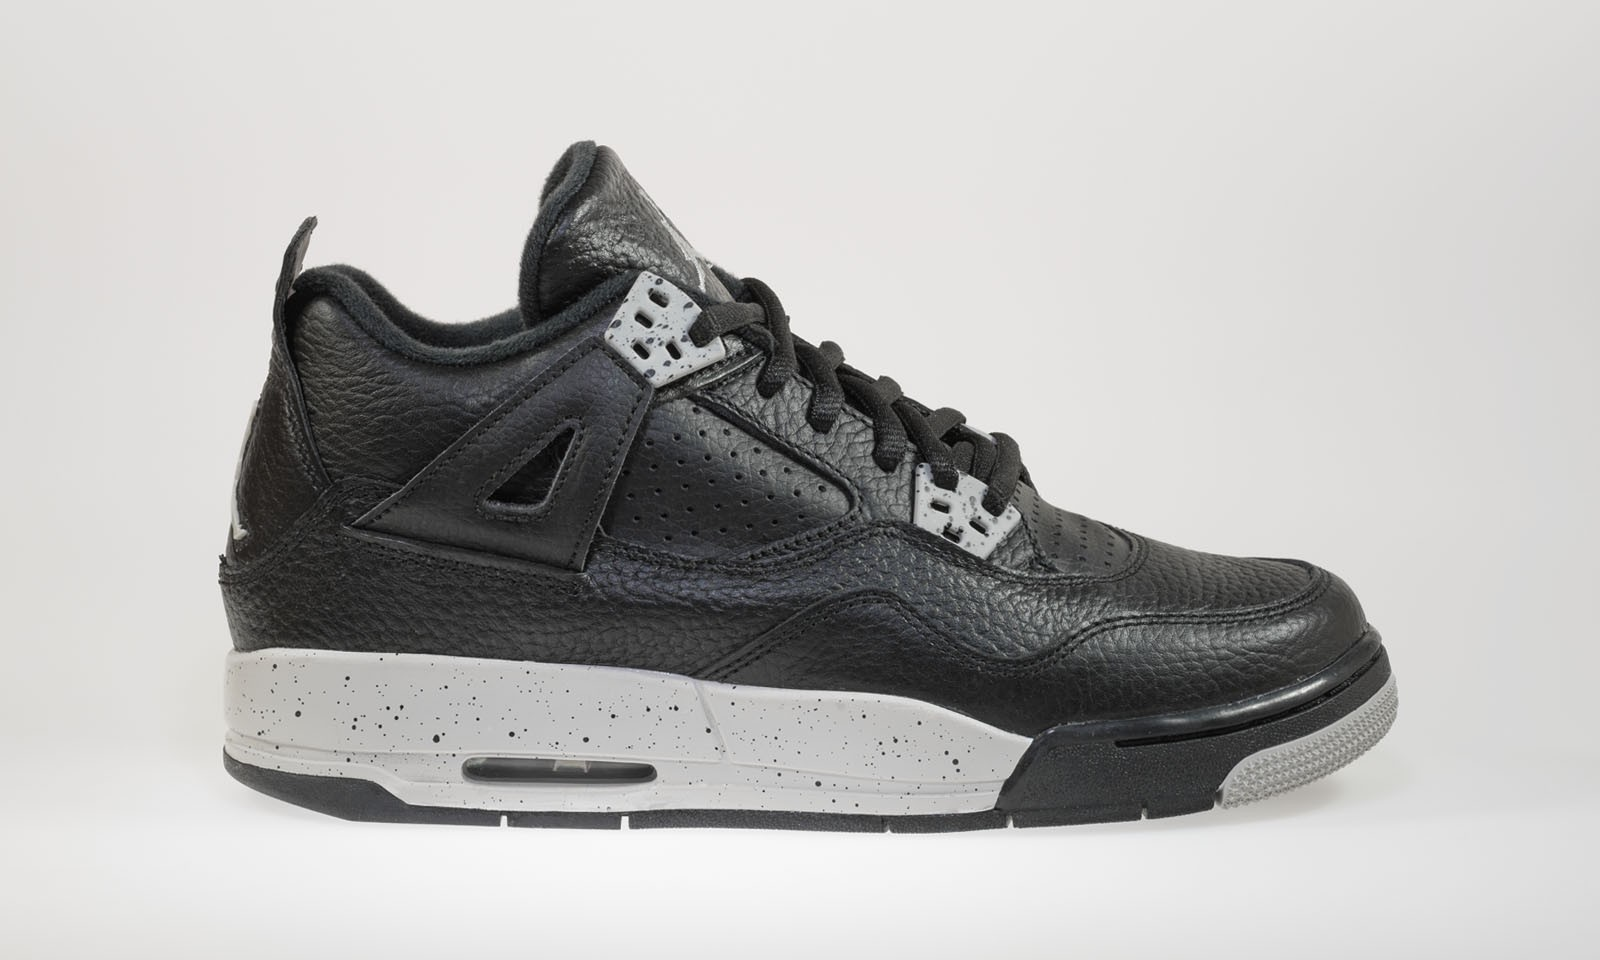 Air Jordan 4(IV) Retro BG 'Tech Grey' Boys' GS Black Tech Basketball Shoes 408452-003